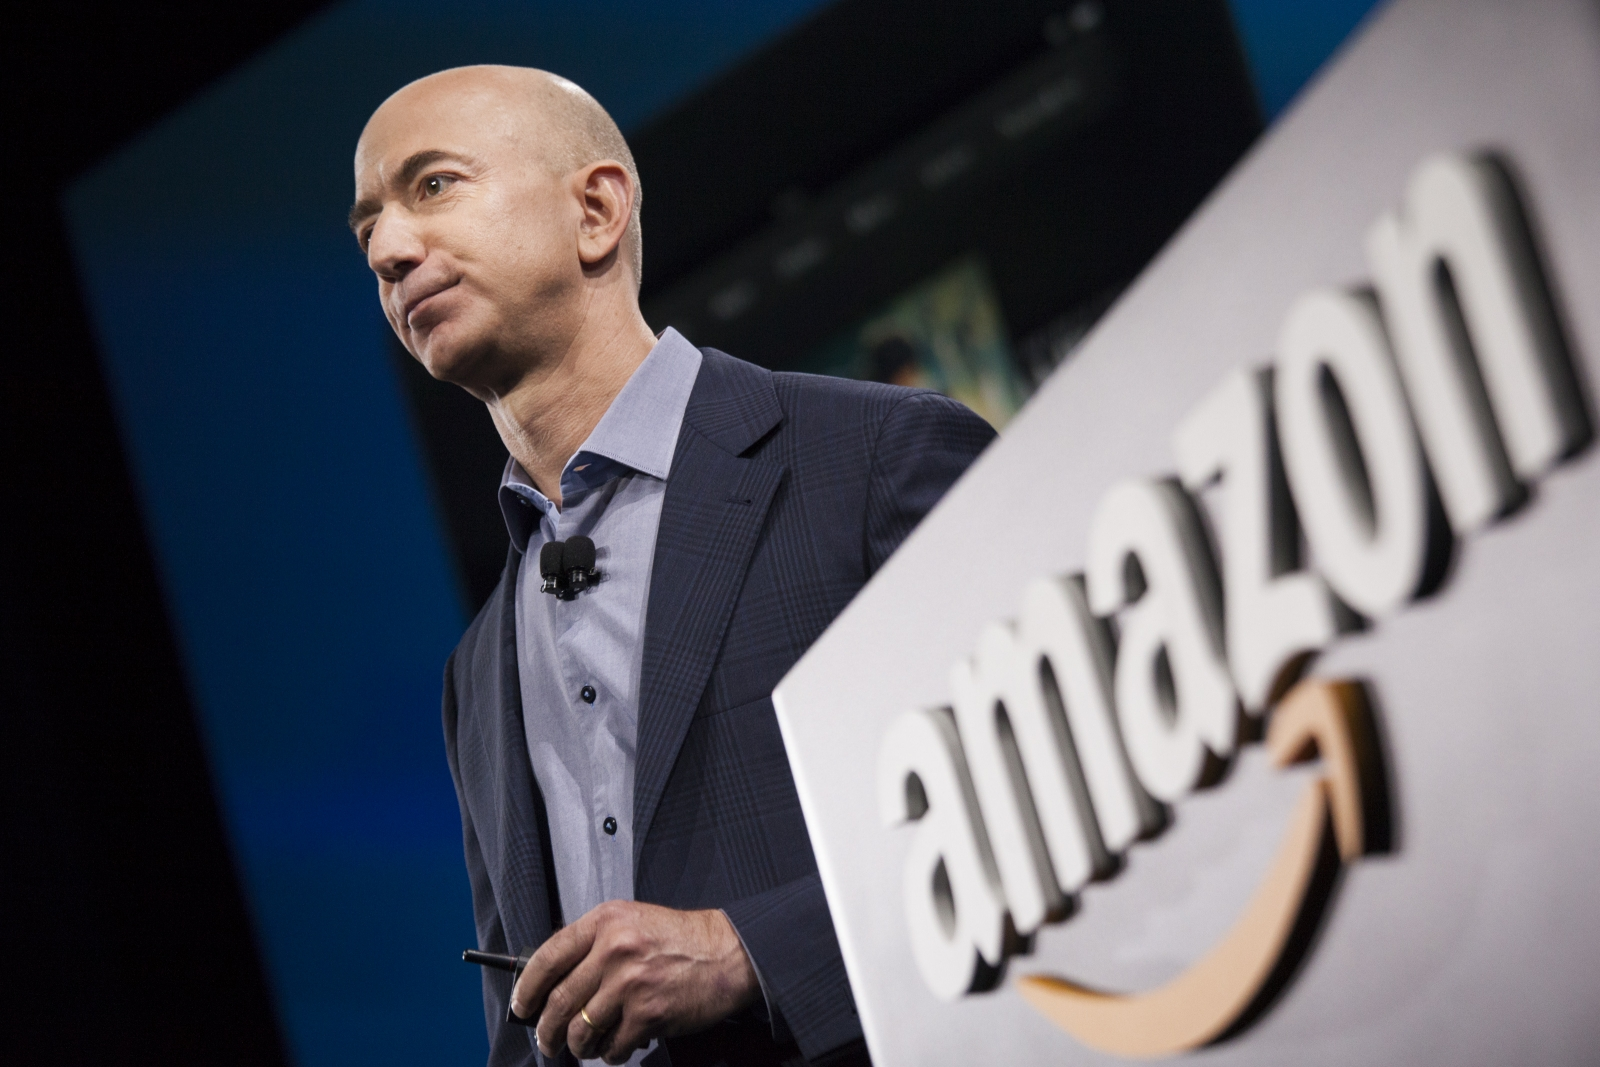 jeff-bezos-is-now-the-richest-person-in-the-world